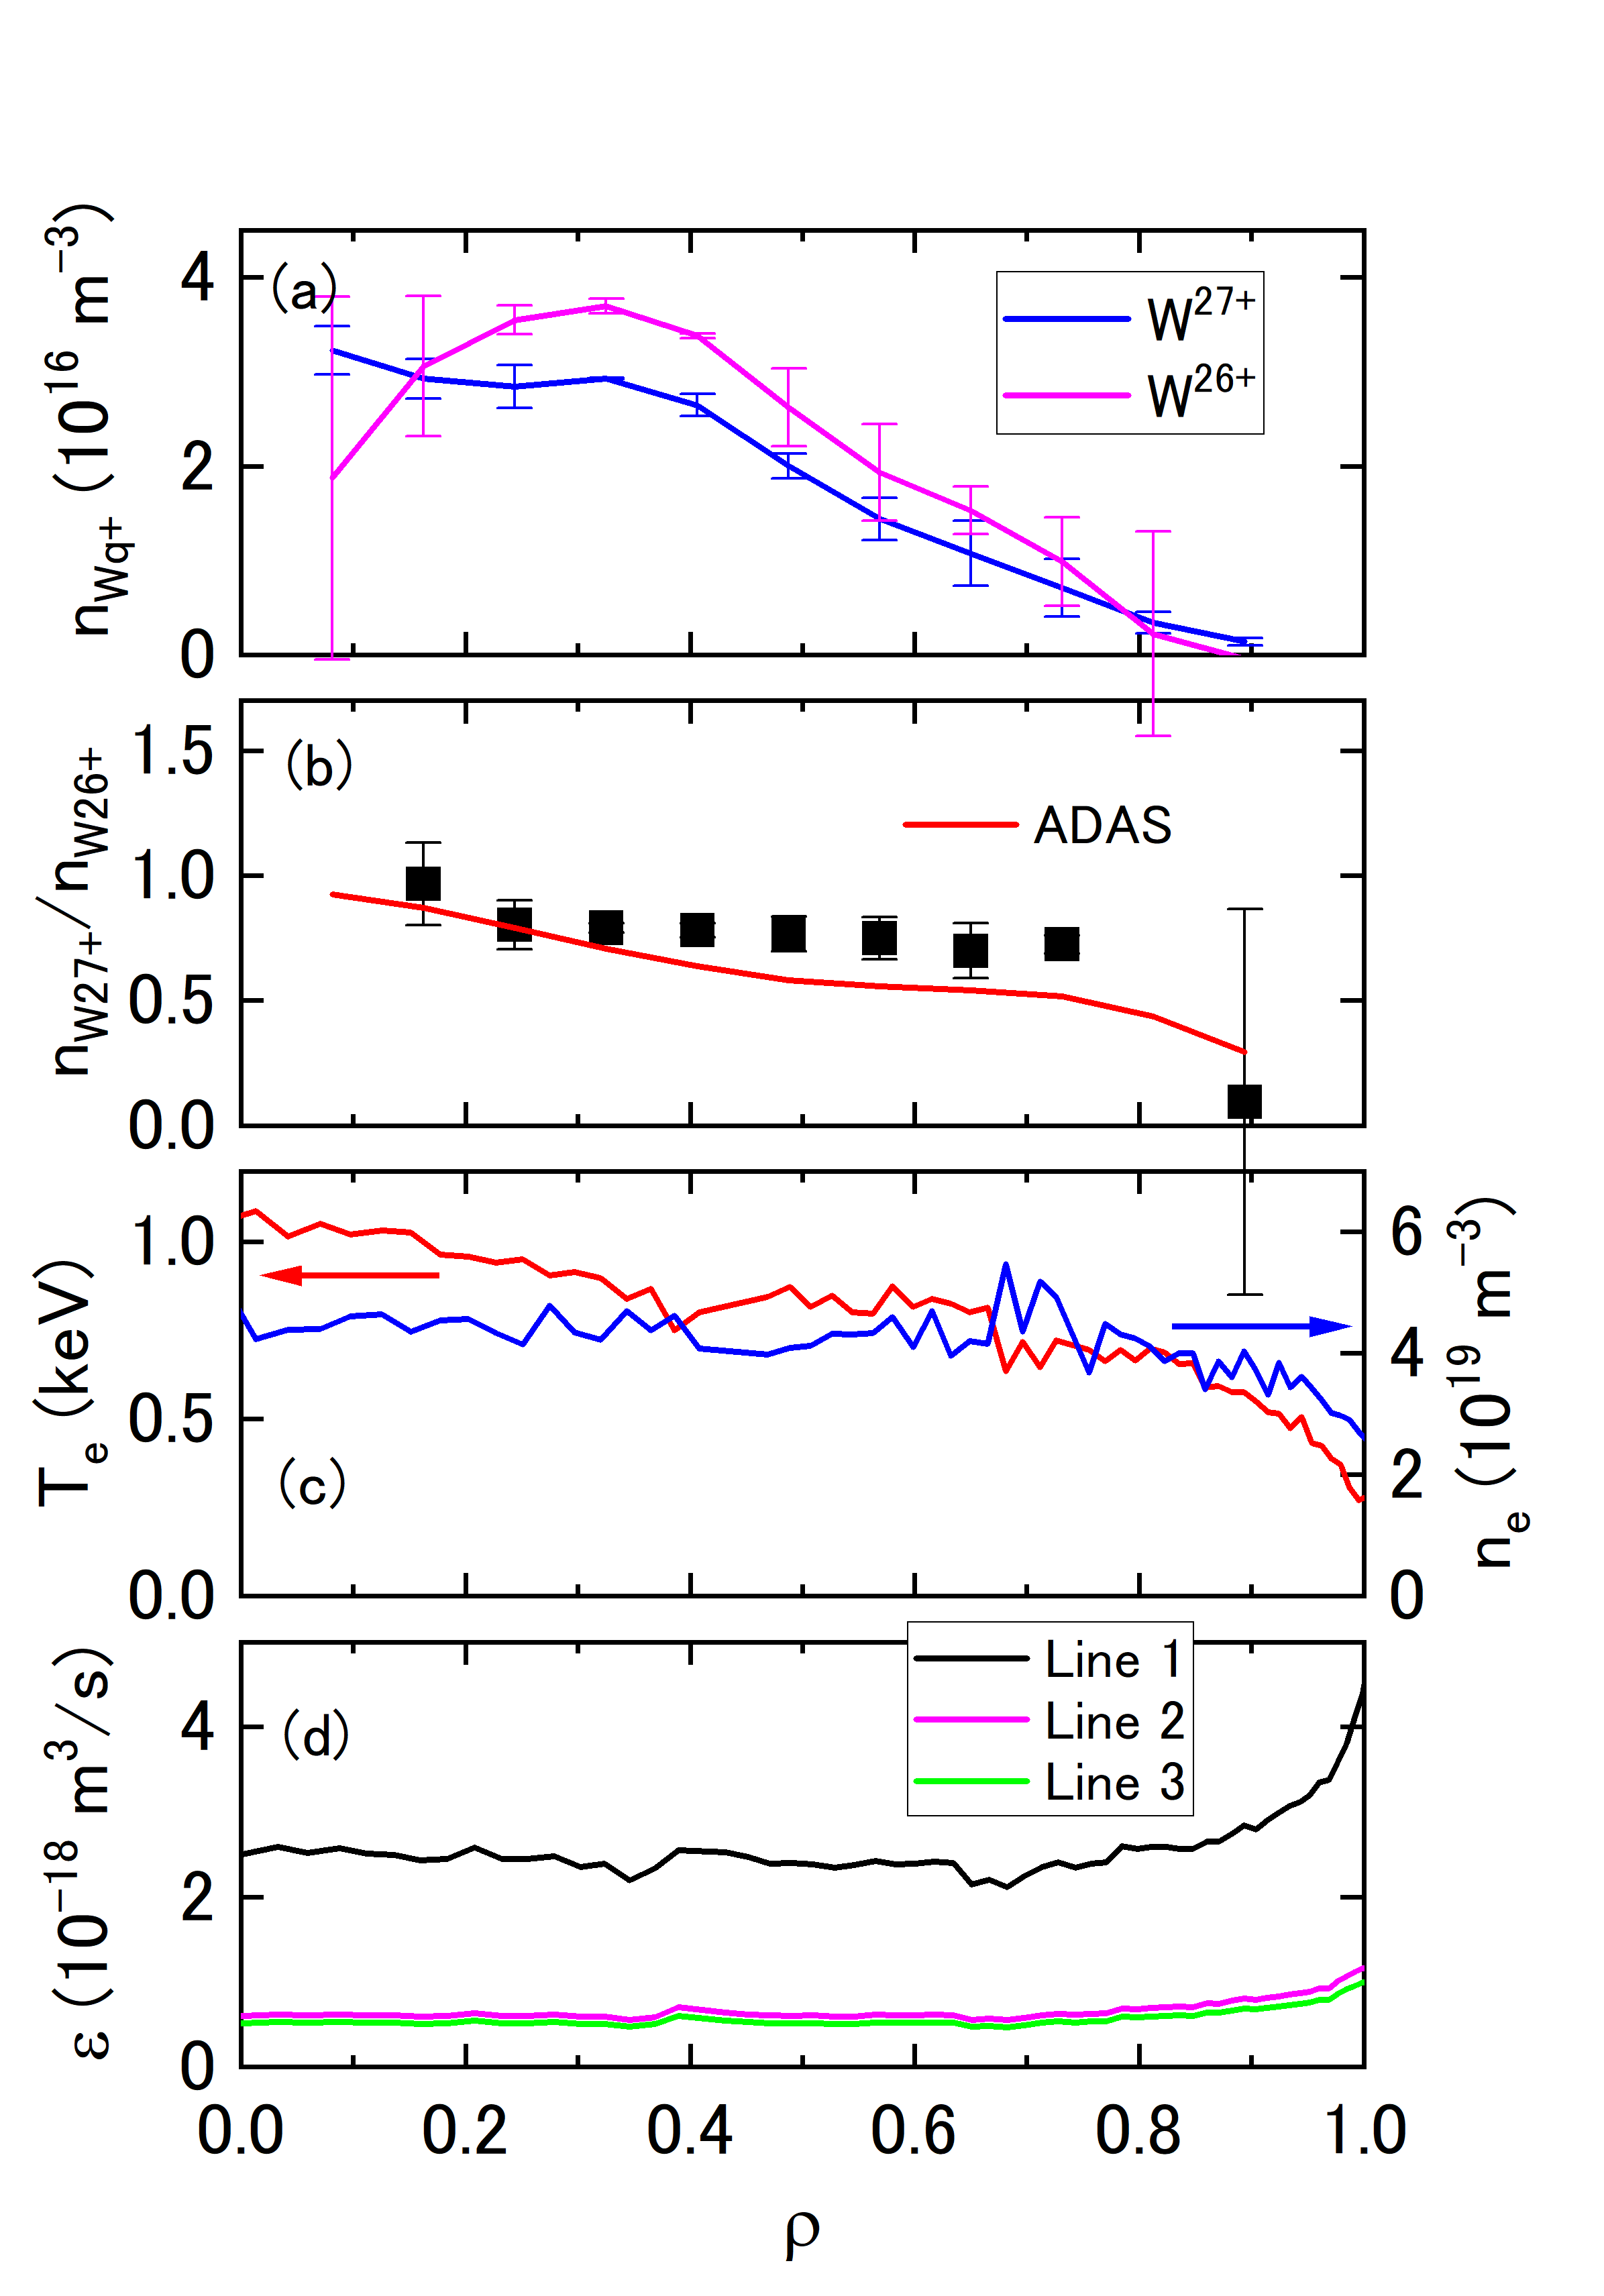 Radial profiles of (a) W$^{26+}$ and W$^{27+}$ densities assessed at $t$ = 5.0 s, (b) ion abundance ratio, (c) electron temperature and electron density, and (d) PECs for Line 1 (337.7 nm of W$^{27+}$) and for Lines 2 and 3 (335.7 nm and 333.7 nm of W$^{26+}$, respectively). The red curve in (b) shows an ion abundance ratio of W$^{27+}$/W$^{26+}$ calculated by using ionization and recombination rate coefficients of ADAS database.